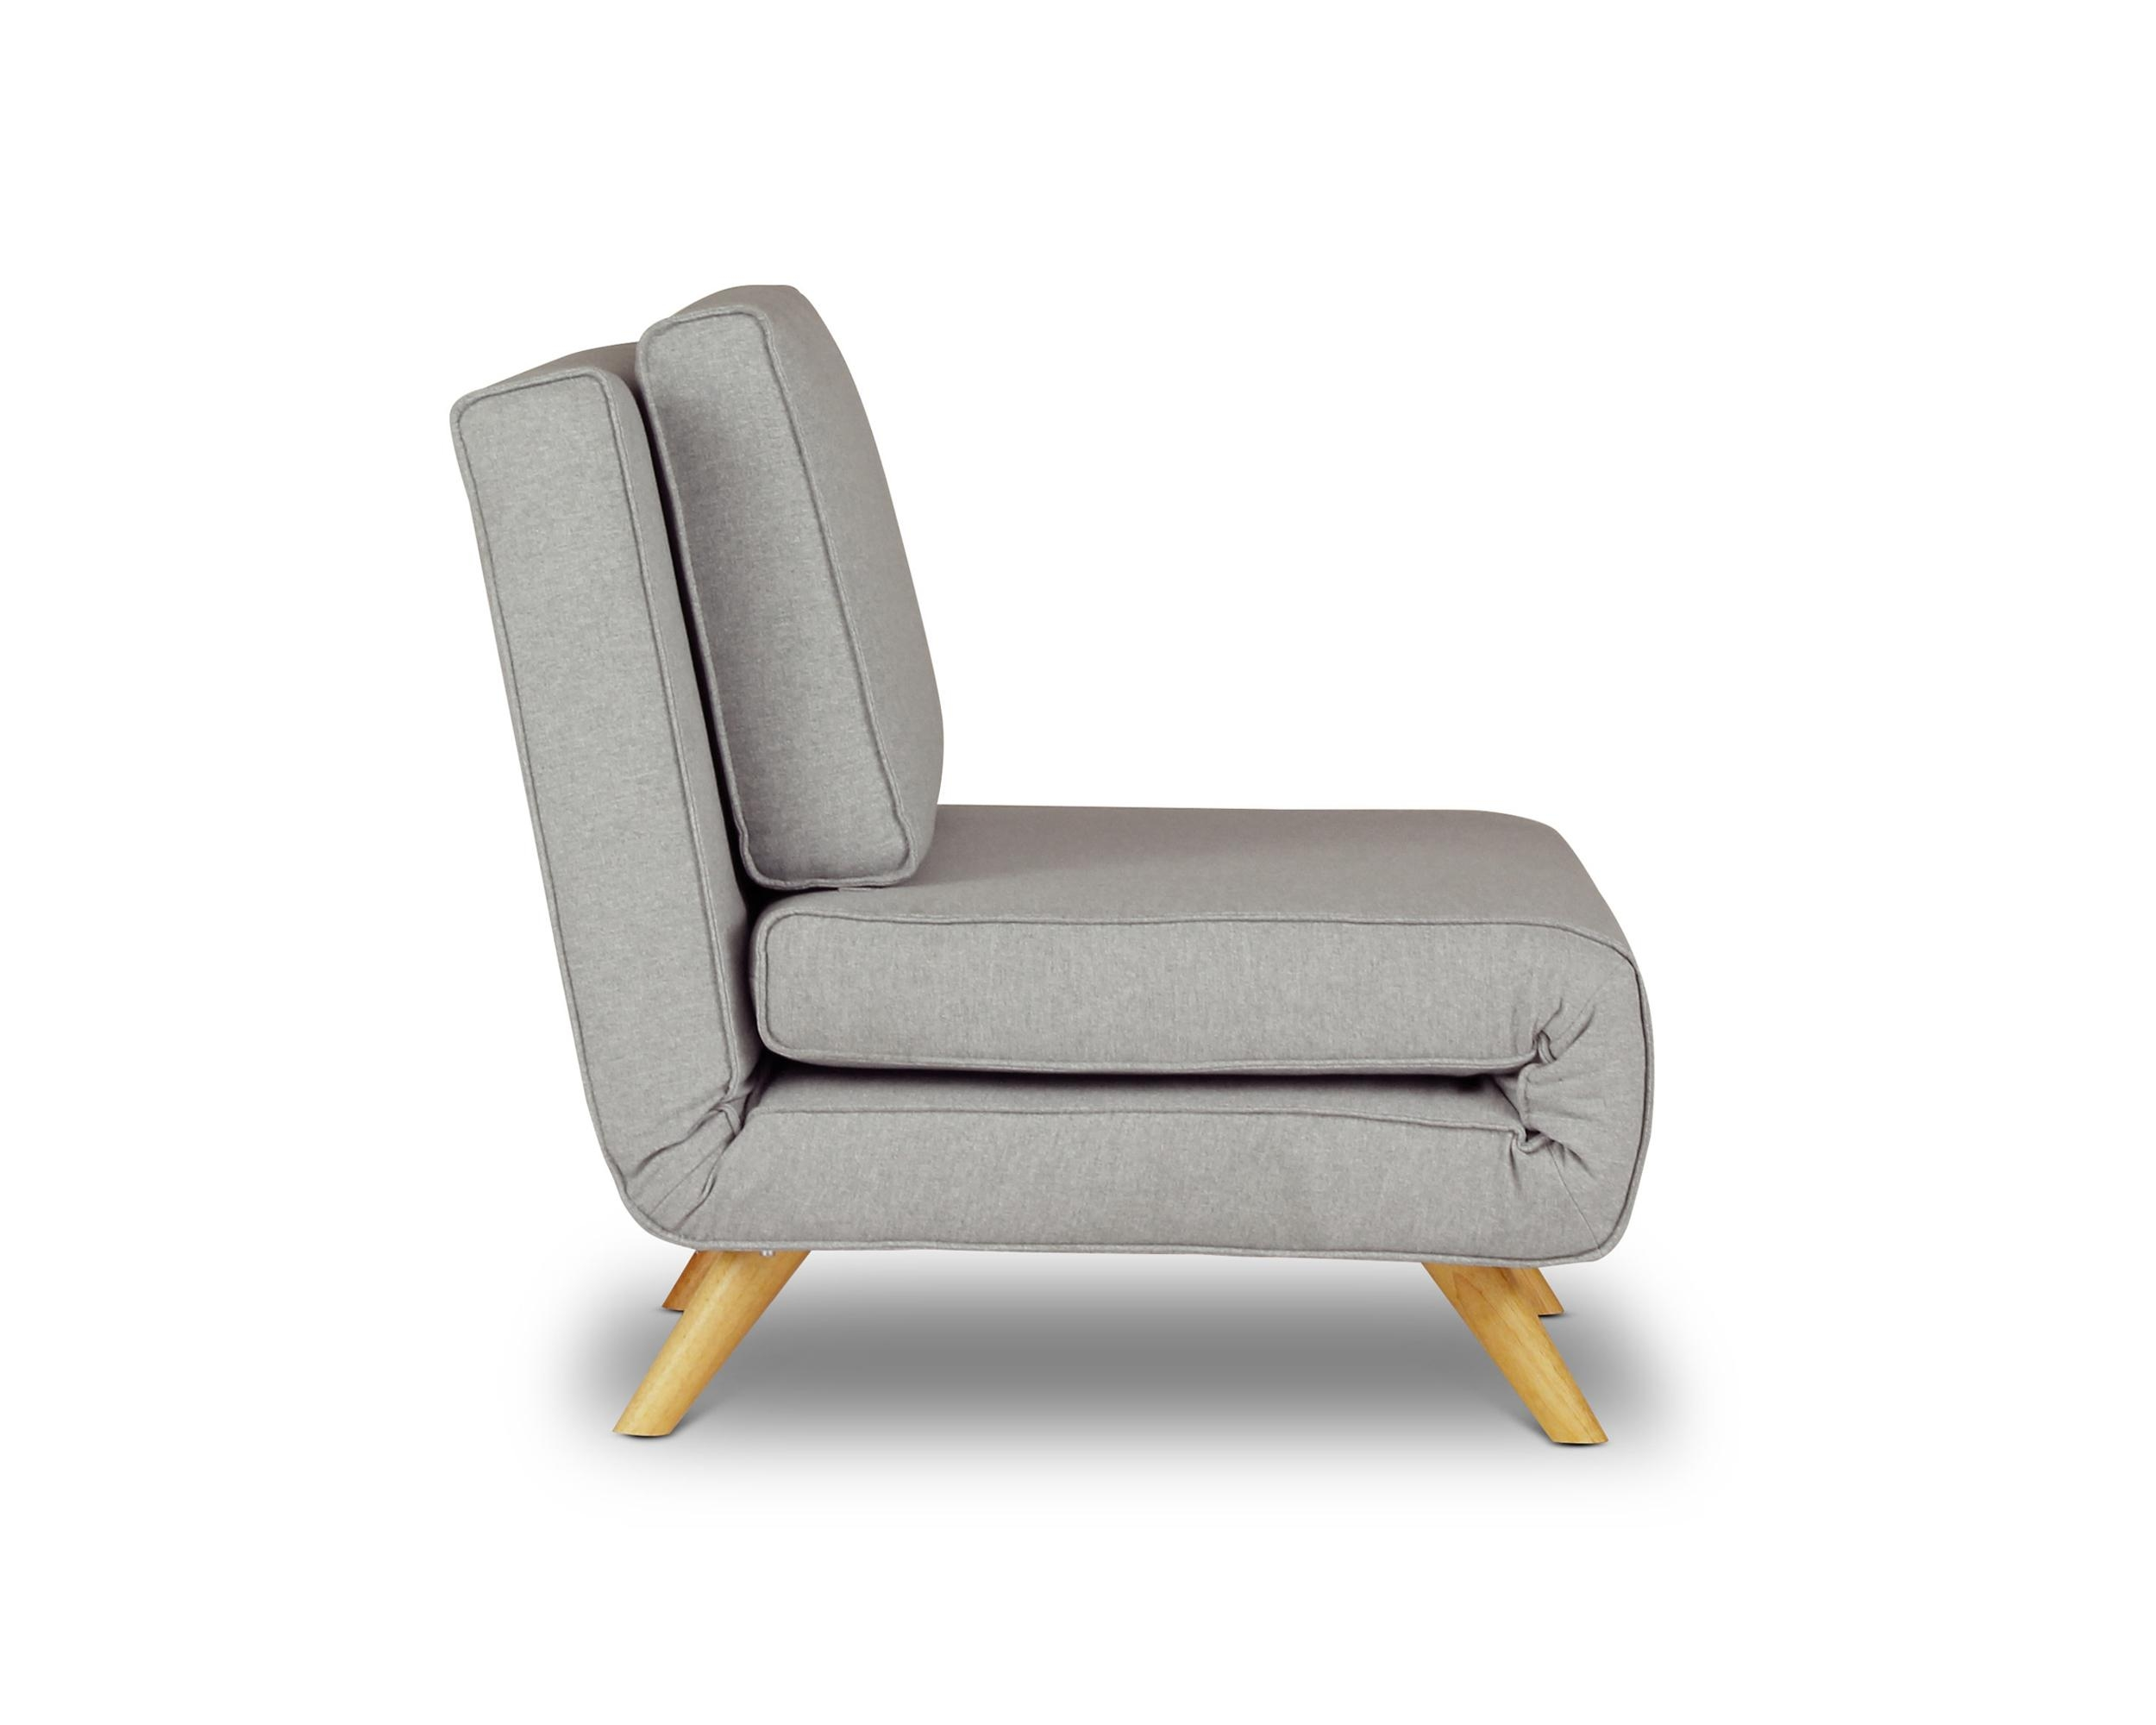 cheap single sofa chair vitra 20 photos bed chairs ideas